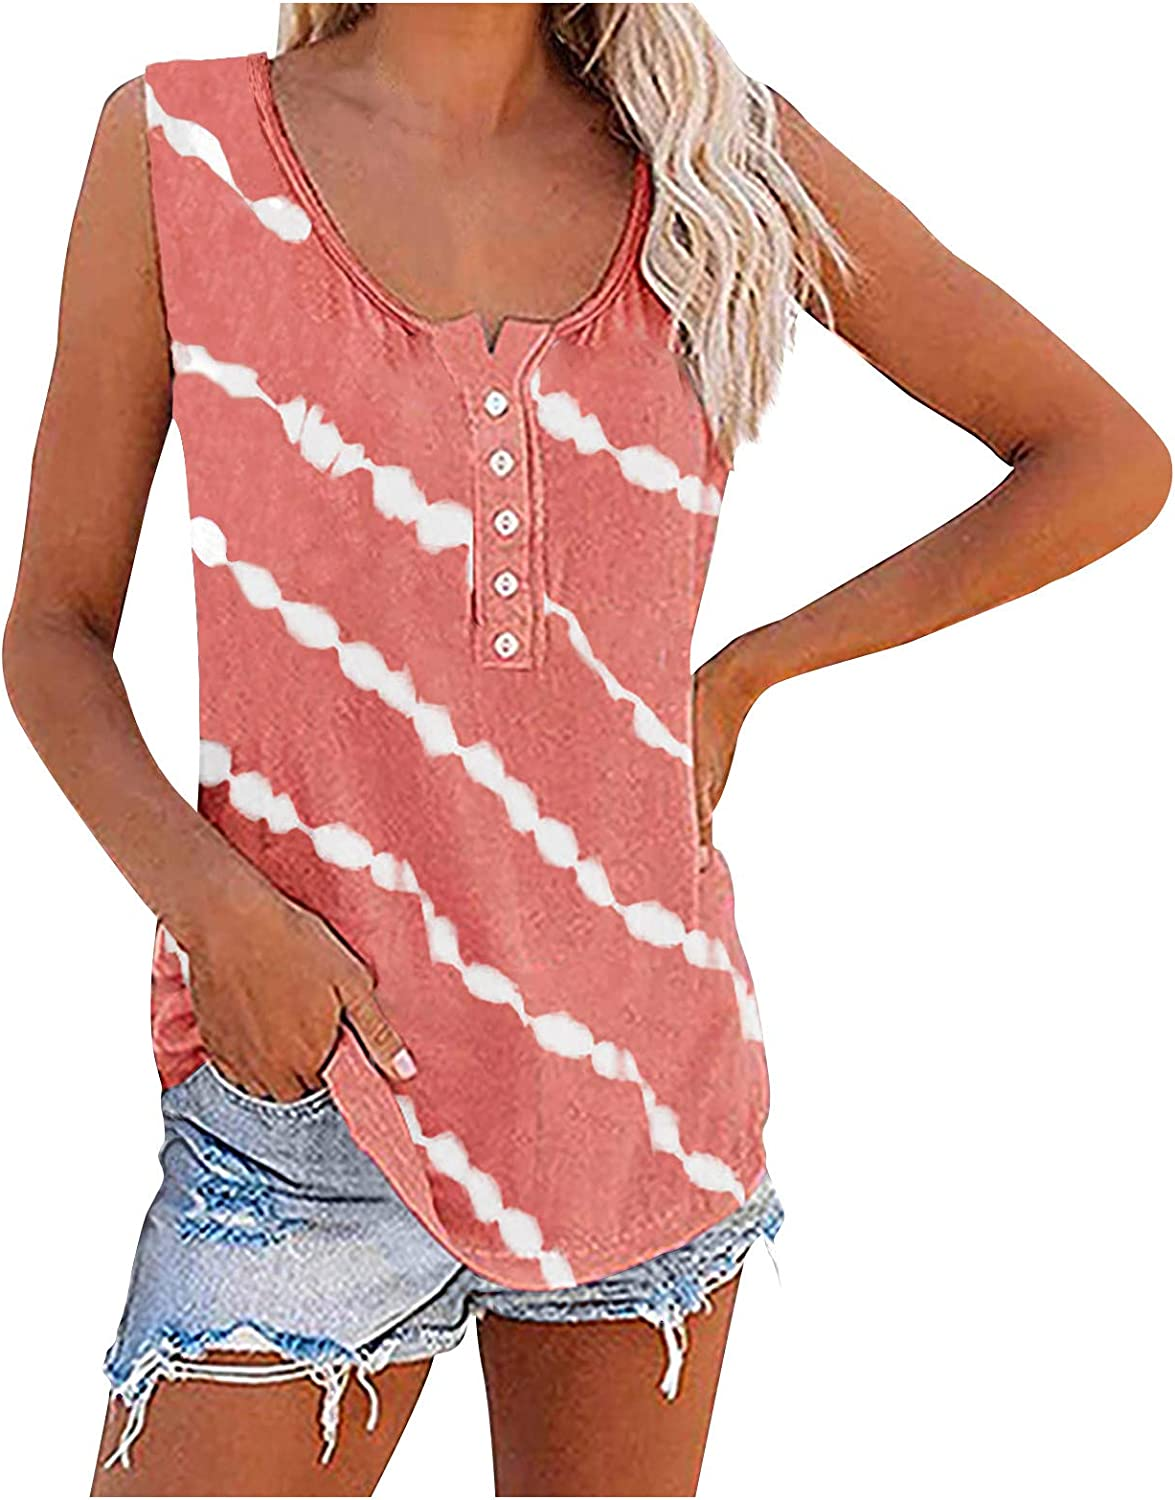 Forwelly Oversize Tank Top for Women Summer Casual Baggy O Neck Vest Tee Fashion Stripe Blouse